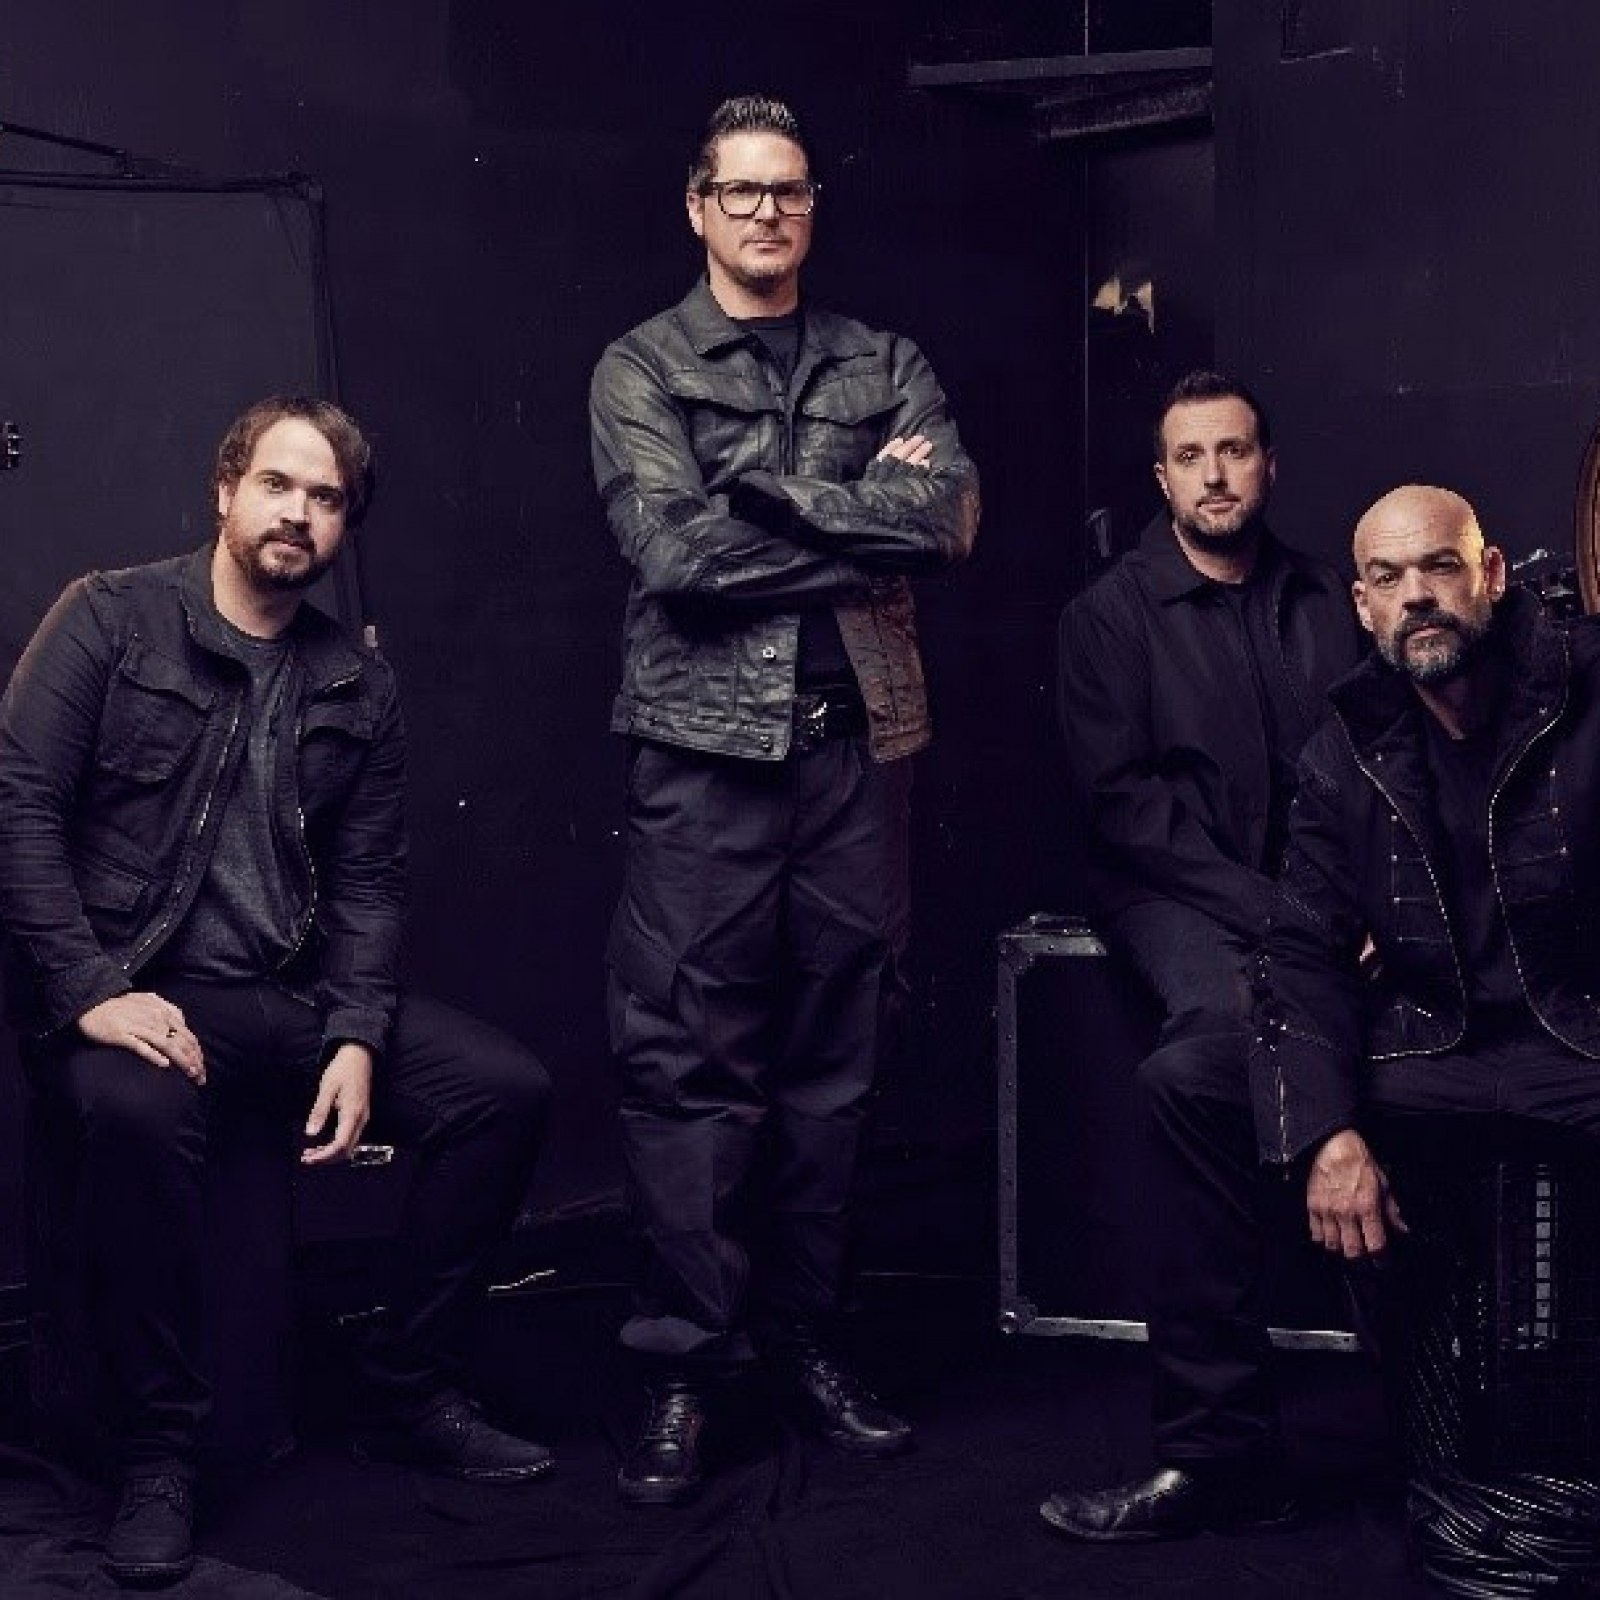 Is Ghost Adventures Doing Anything For Halloween 2020 Meet 'Ghost Adventures' Friend Bill Chappell the Paranormal Inventor